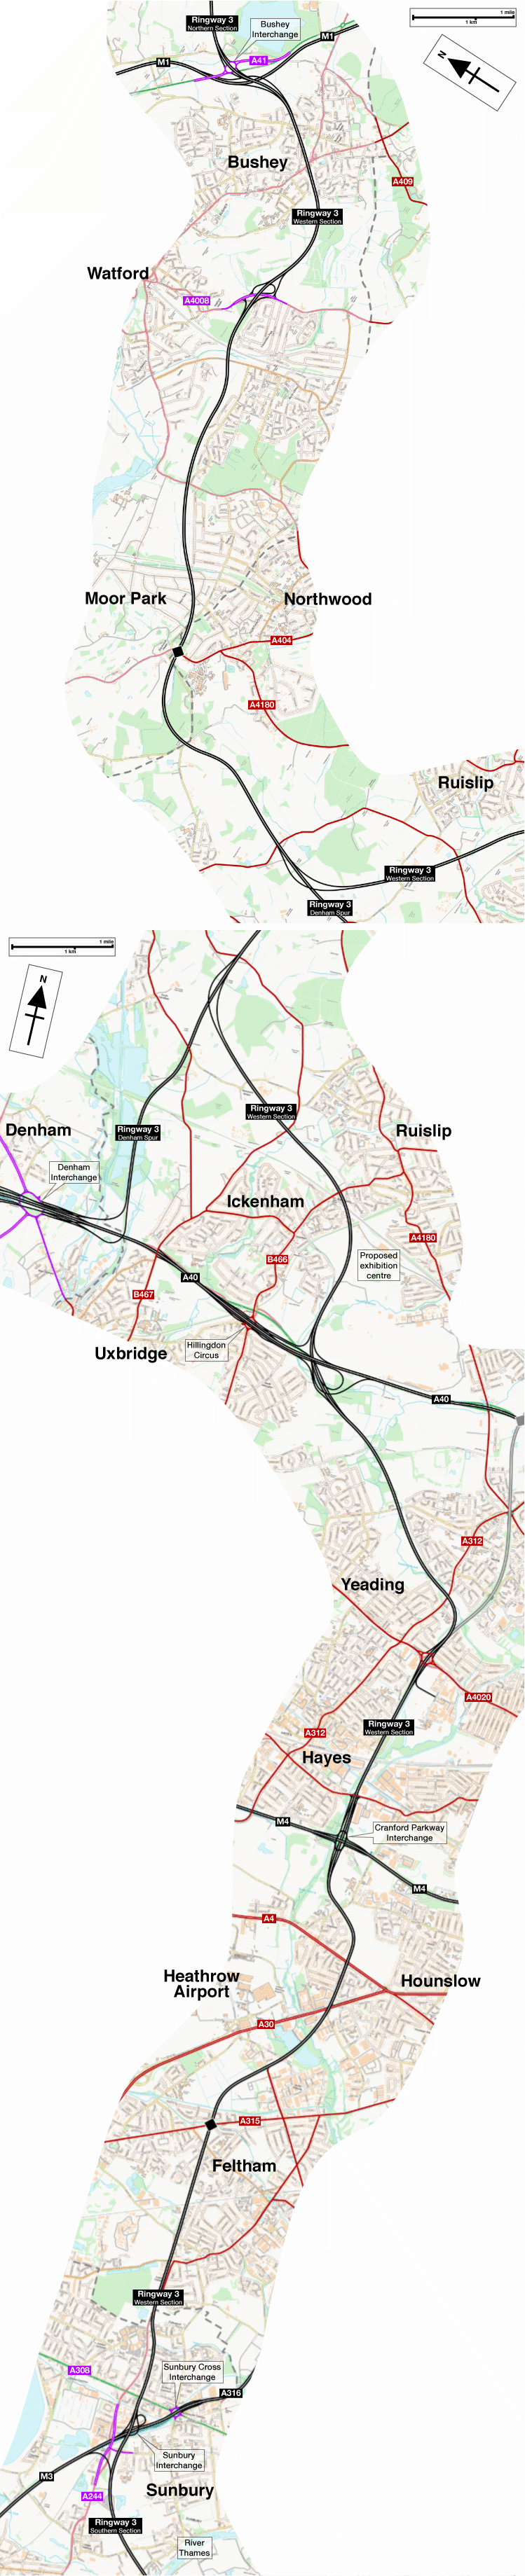 Map of the Ringway 3 Western Section